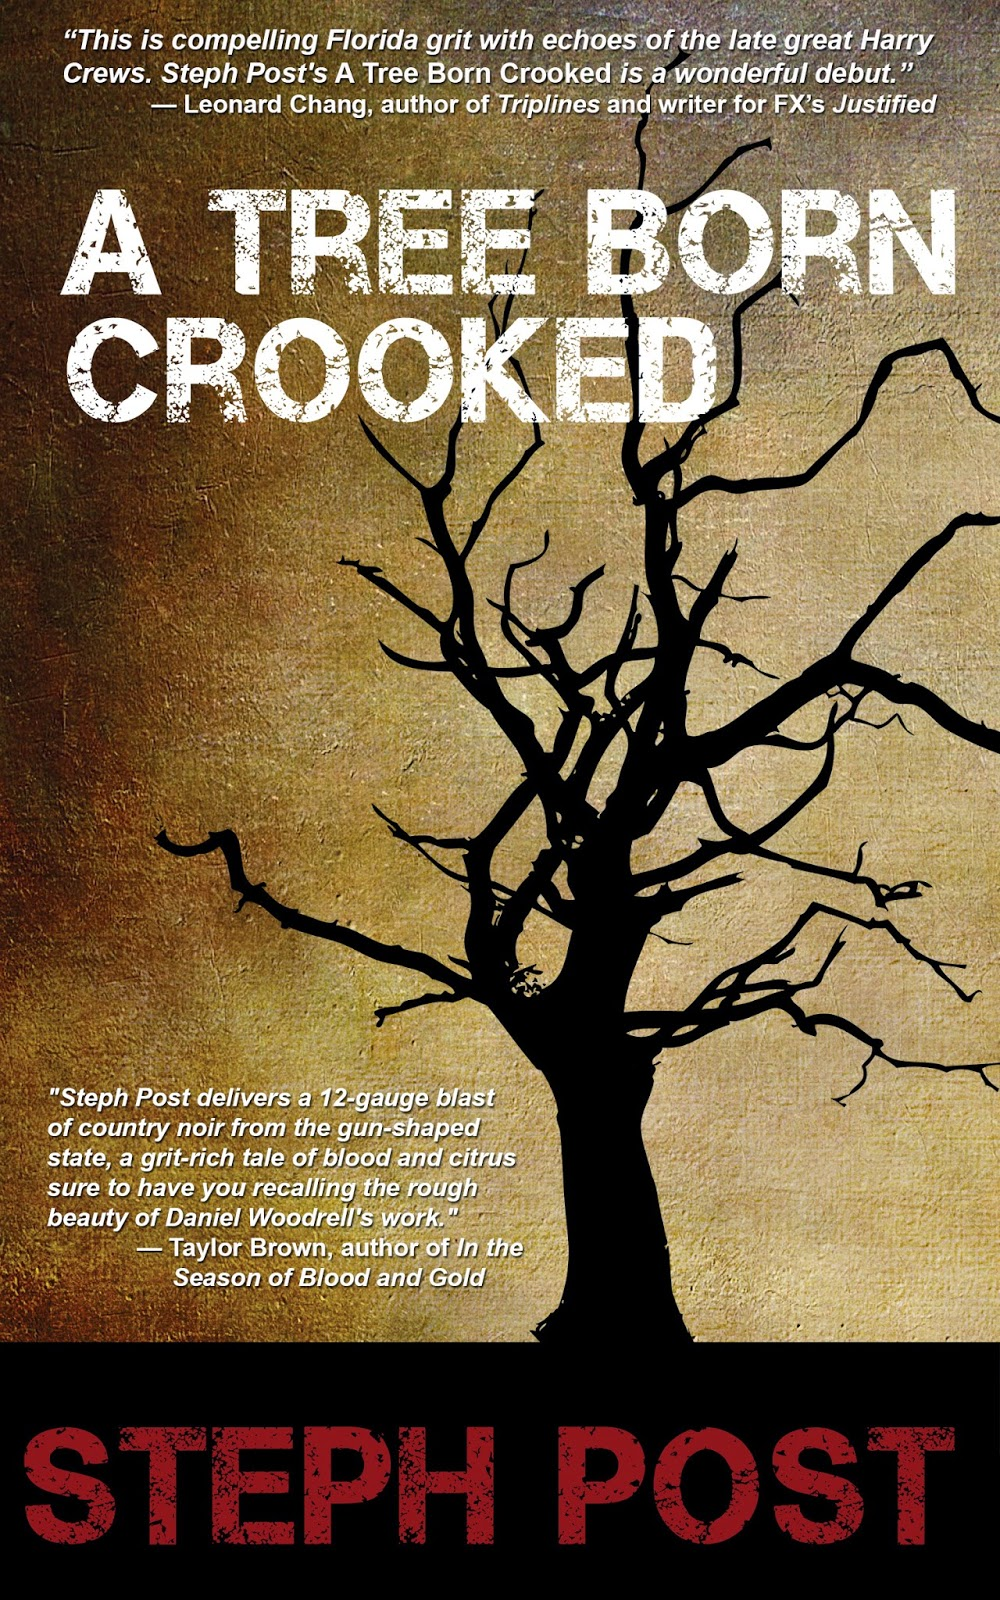 http://necessaryfiction.com/reviews/ATreeBornCrookedbyStephPost